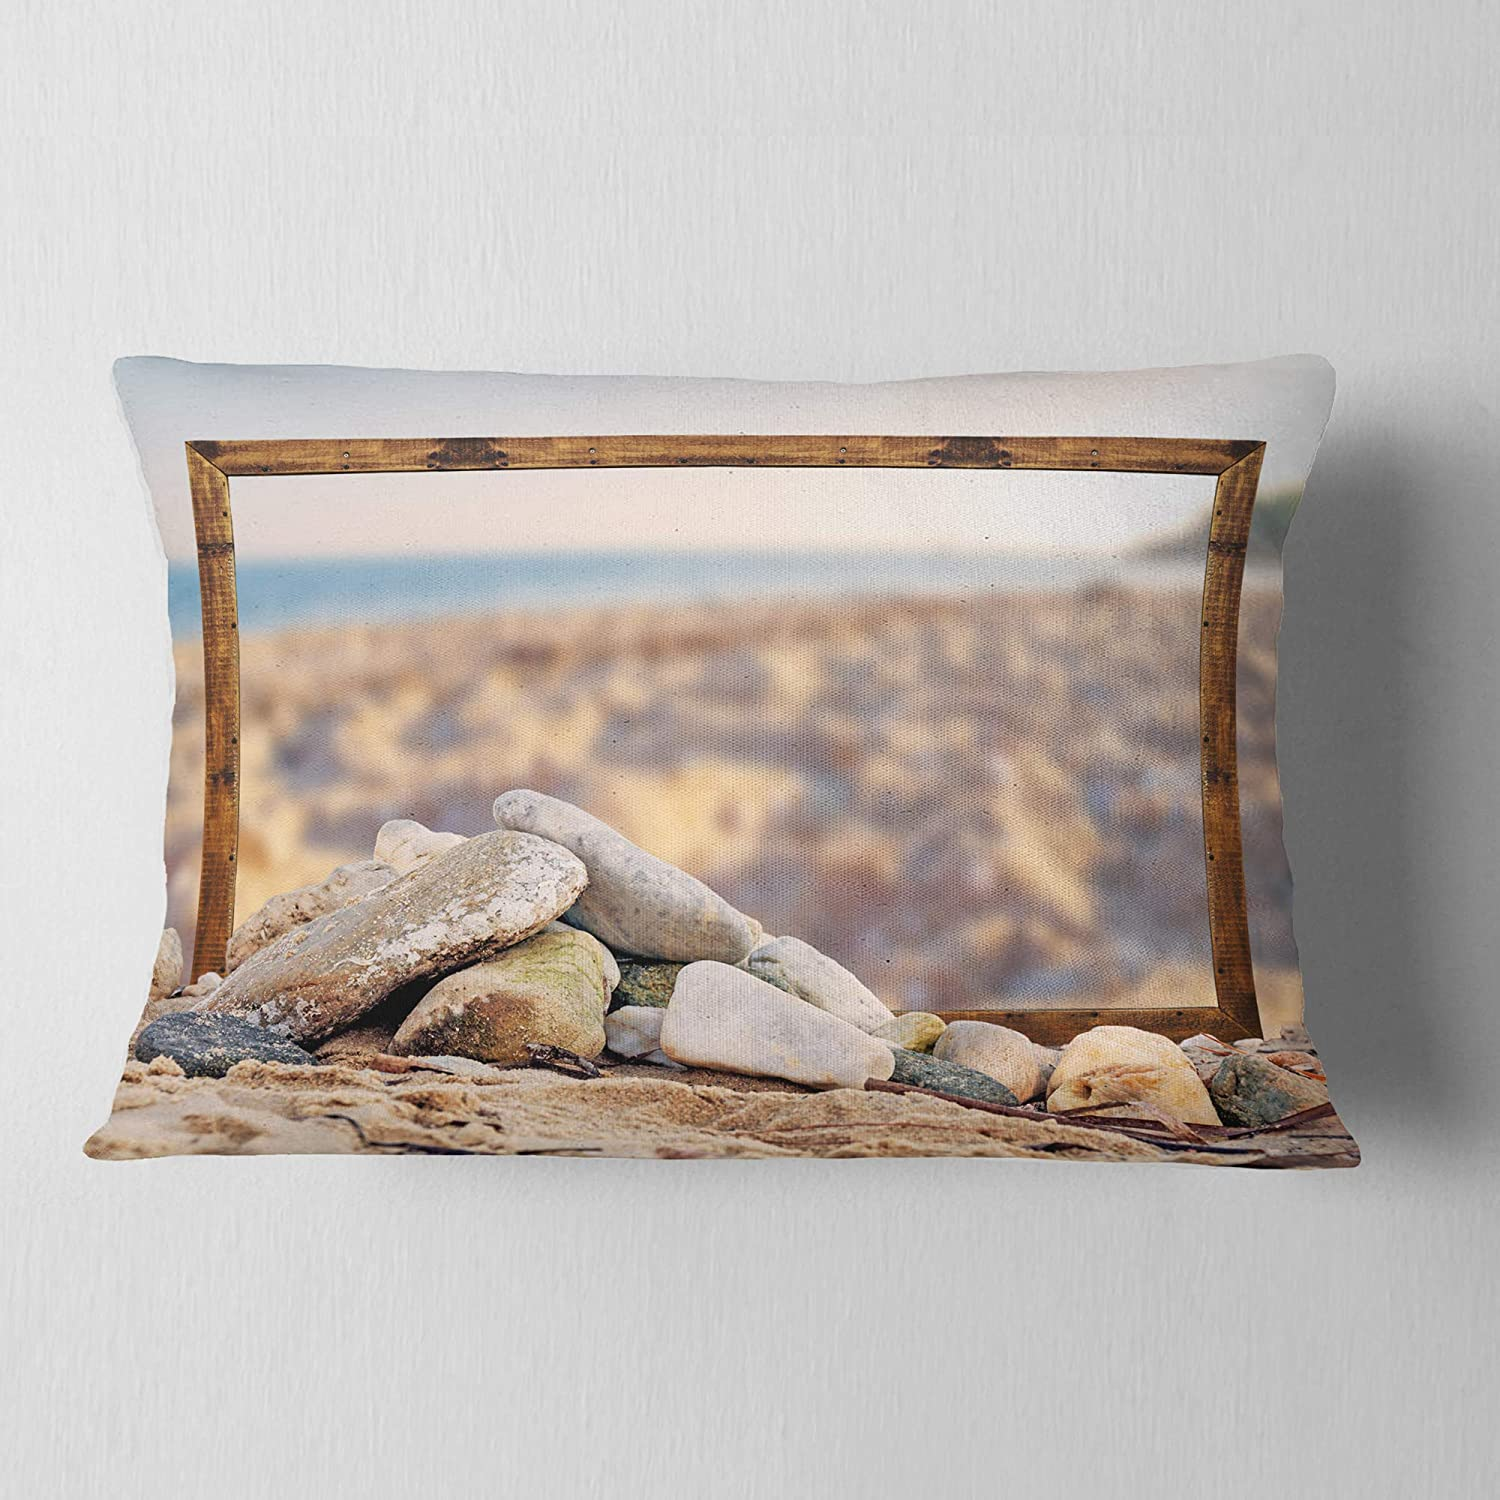 Designart CU9385-12-20 Framed Effect Blurred Seashore Landscape Printed Lumbar Cushion Cover for Living Room Sofa Throw Pillow 12 in Insert Side in x 20 in